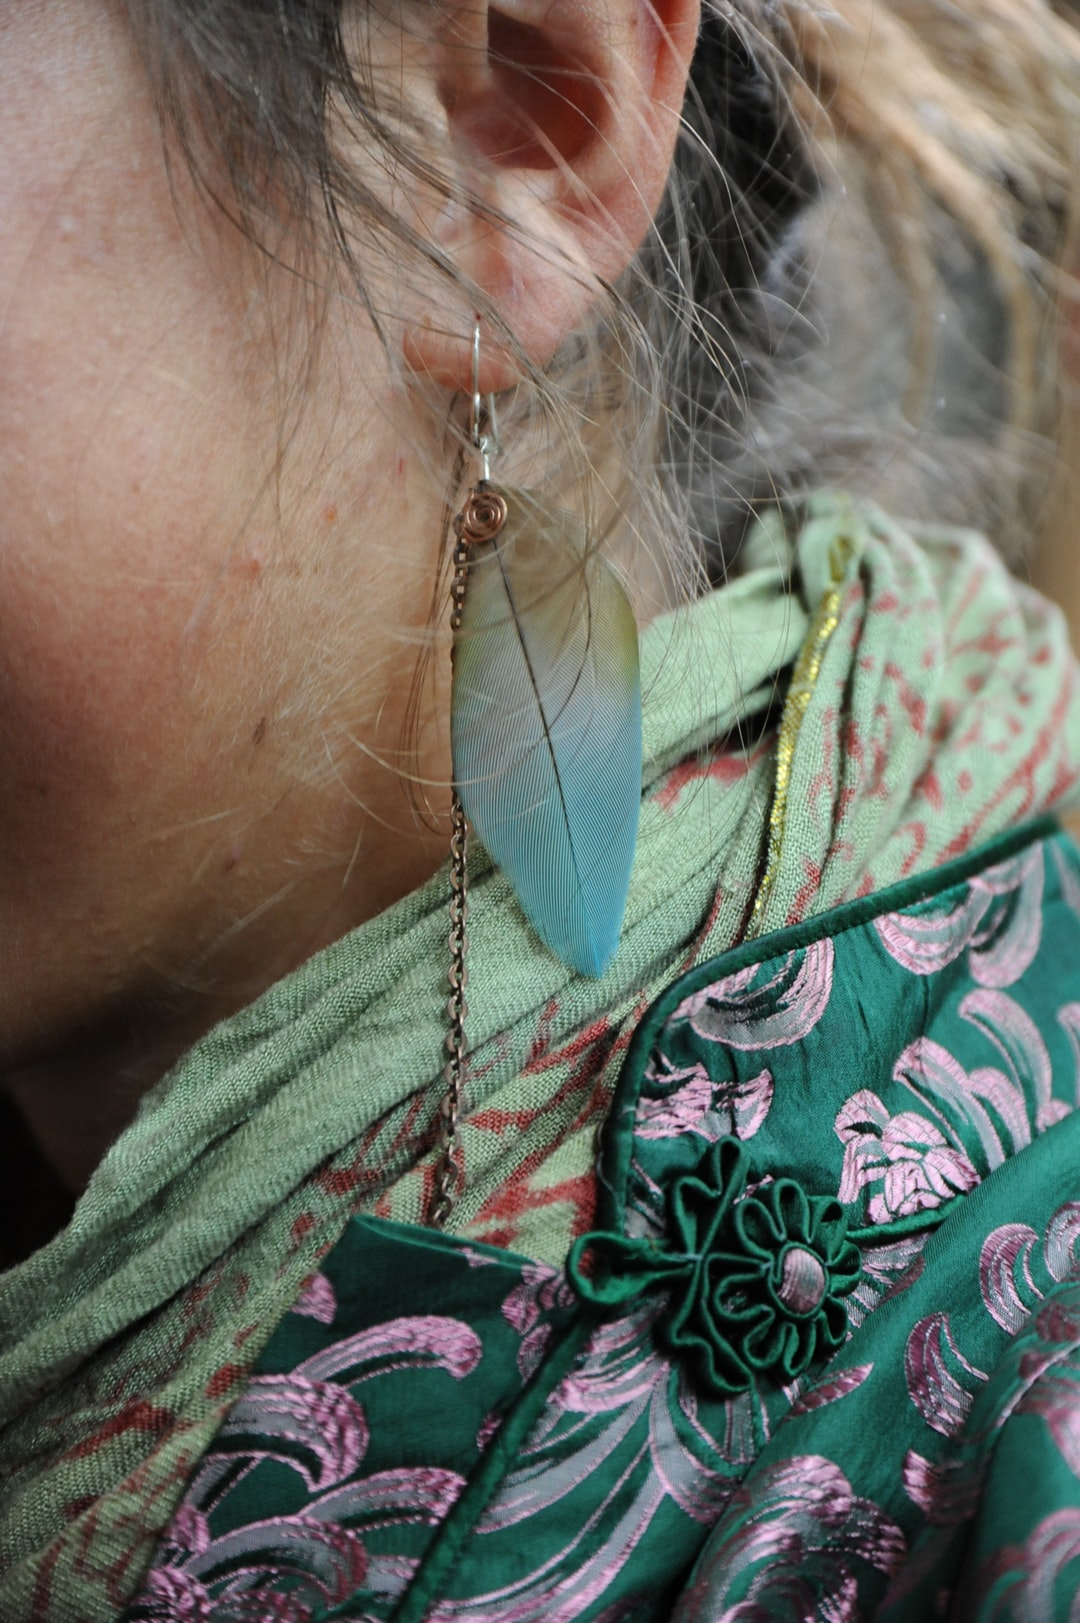 Leaf earring, metal chain detail, light green and red Indian fabric, gold metallic edging, forest green and pink silk jacket, green daisy button, blonde hair, a Buddhist student's style, In Celebration Centennial, Dilgo Khyentse Yangsi Rinpoche, Vancouver B.C, Canada